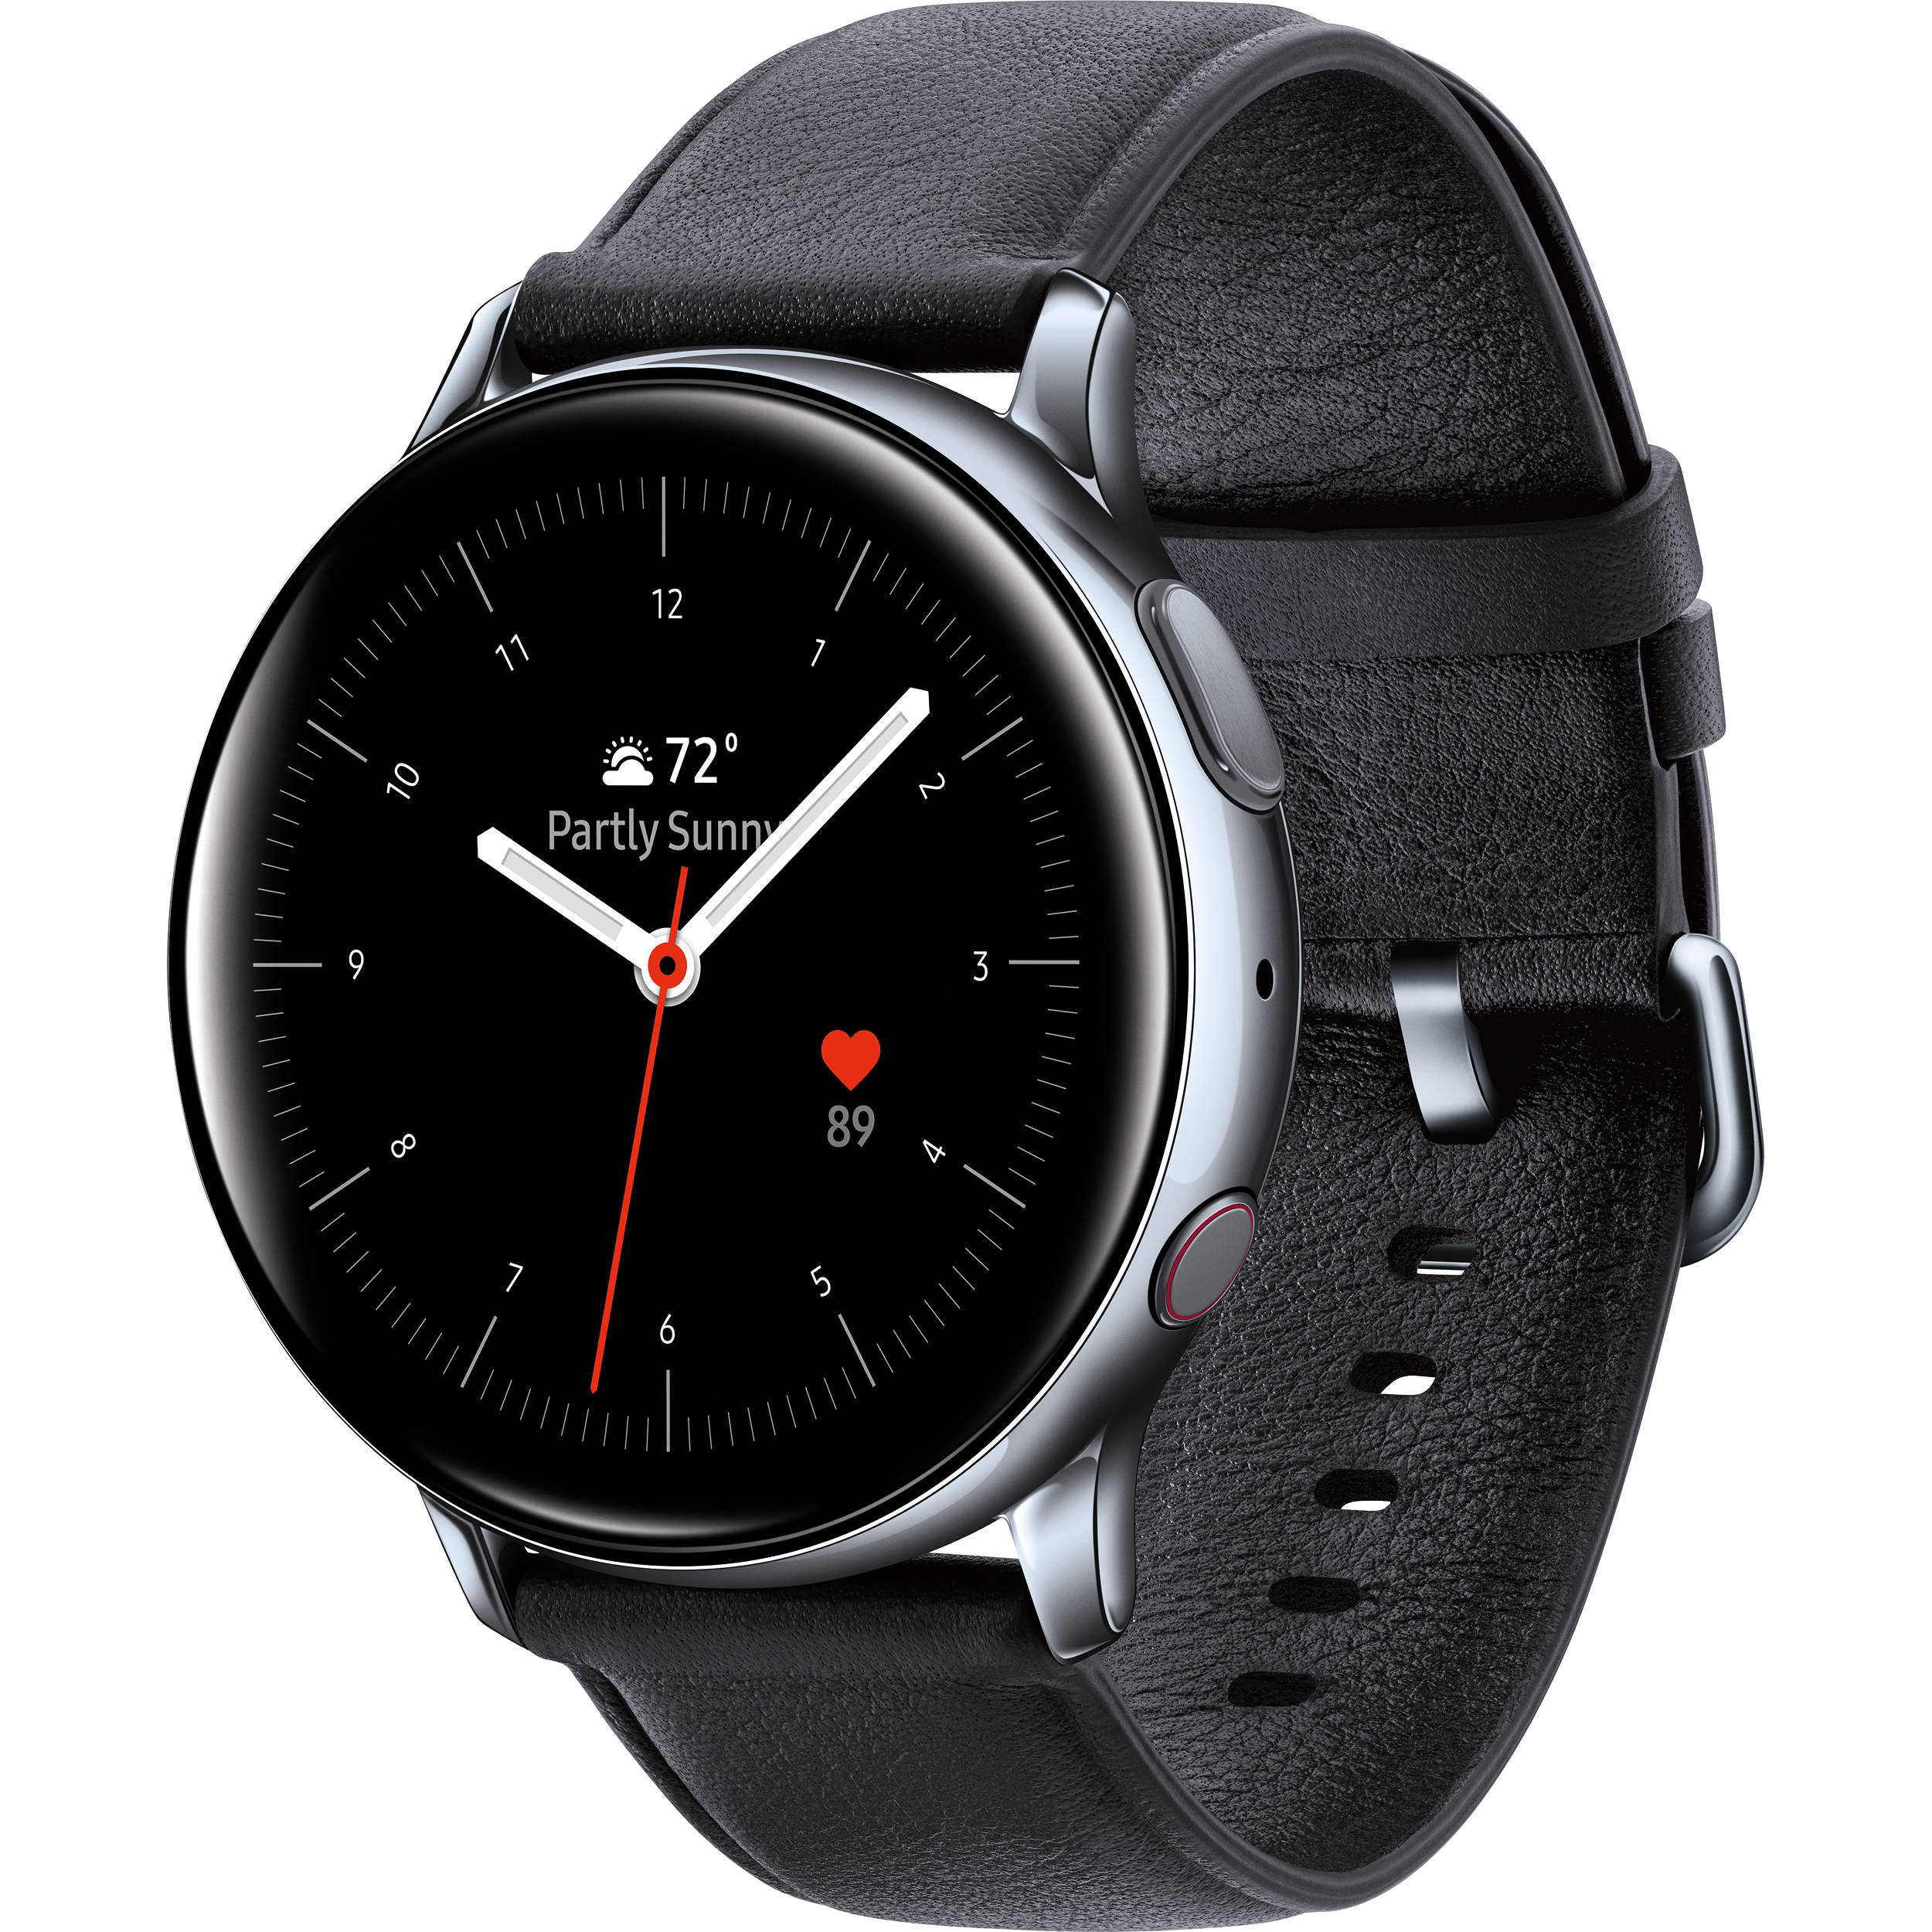 Galaxy Watch Active 2 Blutdruck